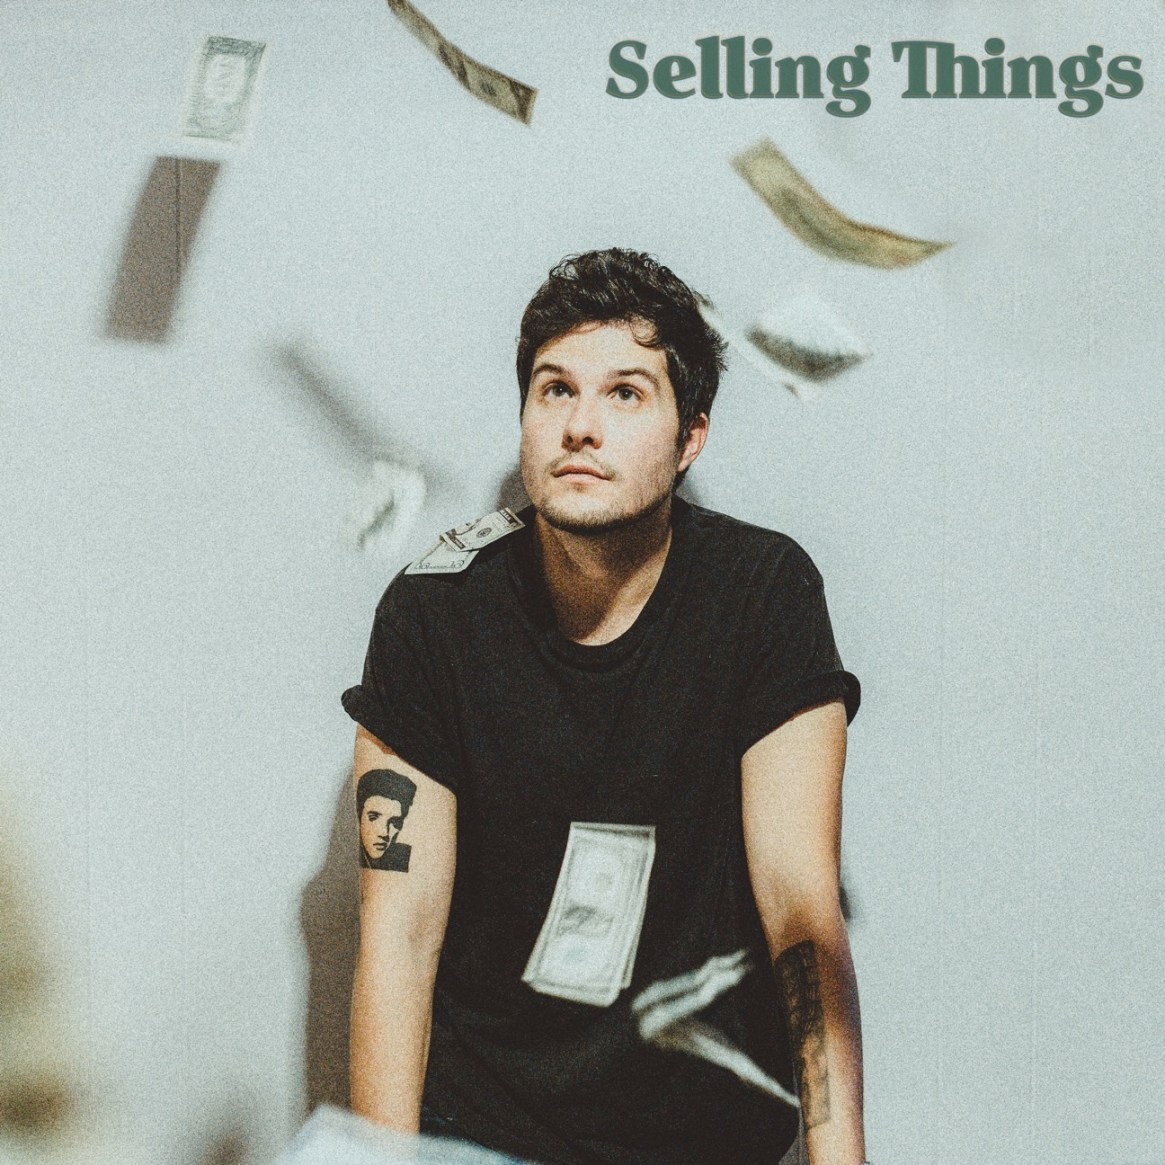 Selling-Things-Brian-Dunne